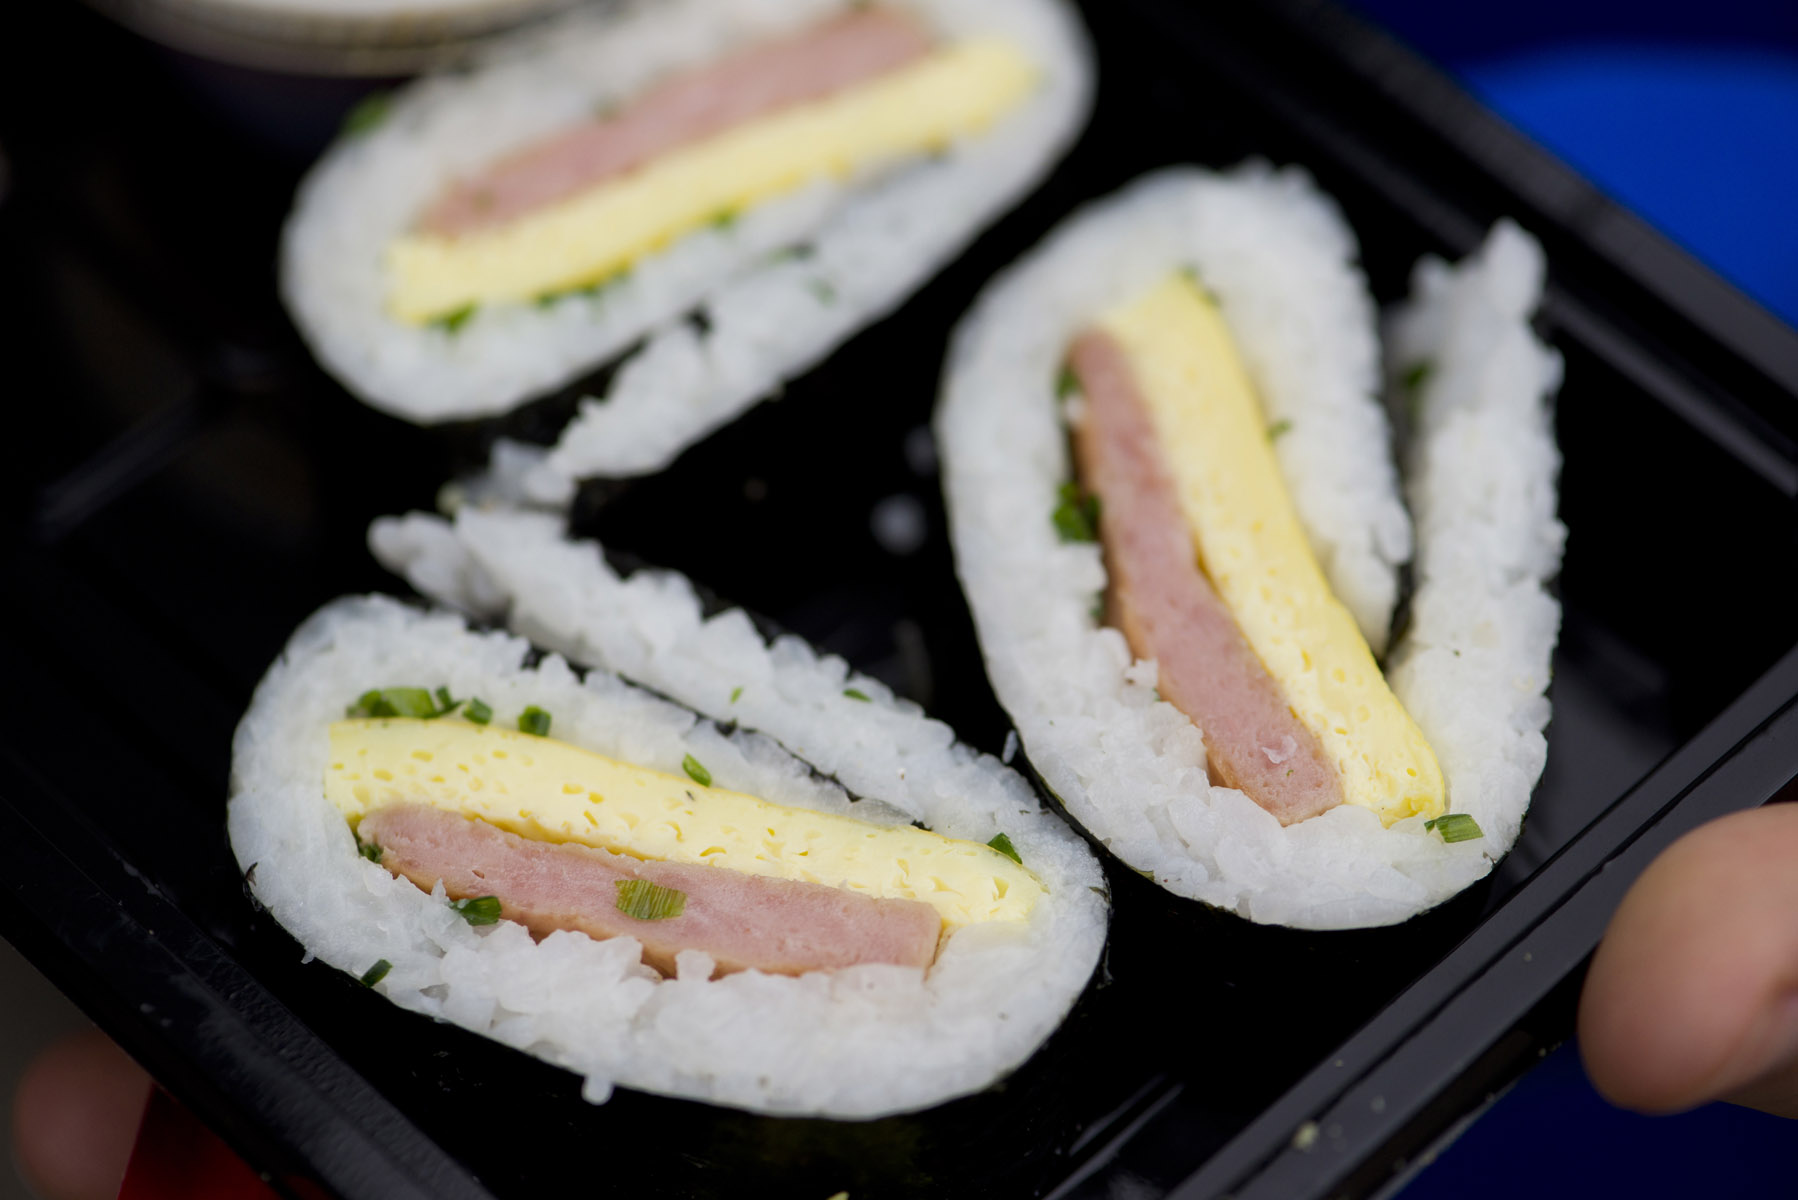 SPAM sushi from Sabino's filled with grilled SPAM, rice and egg at the Minnesota State Fair.